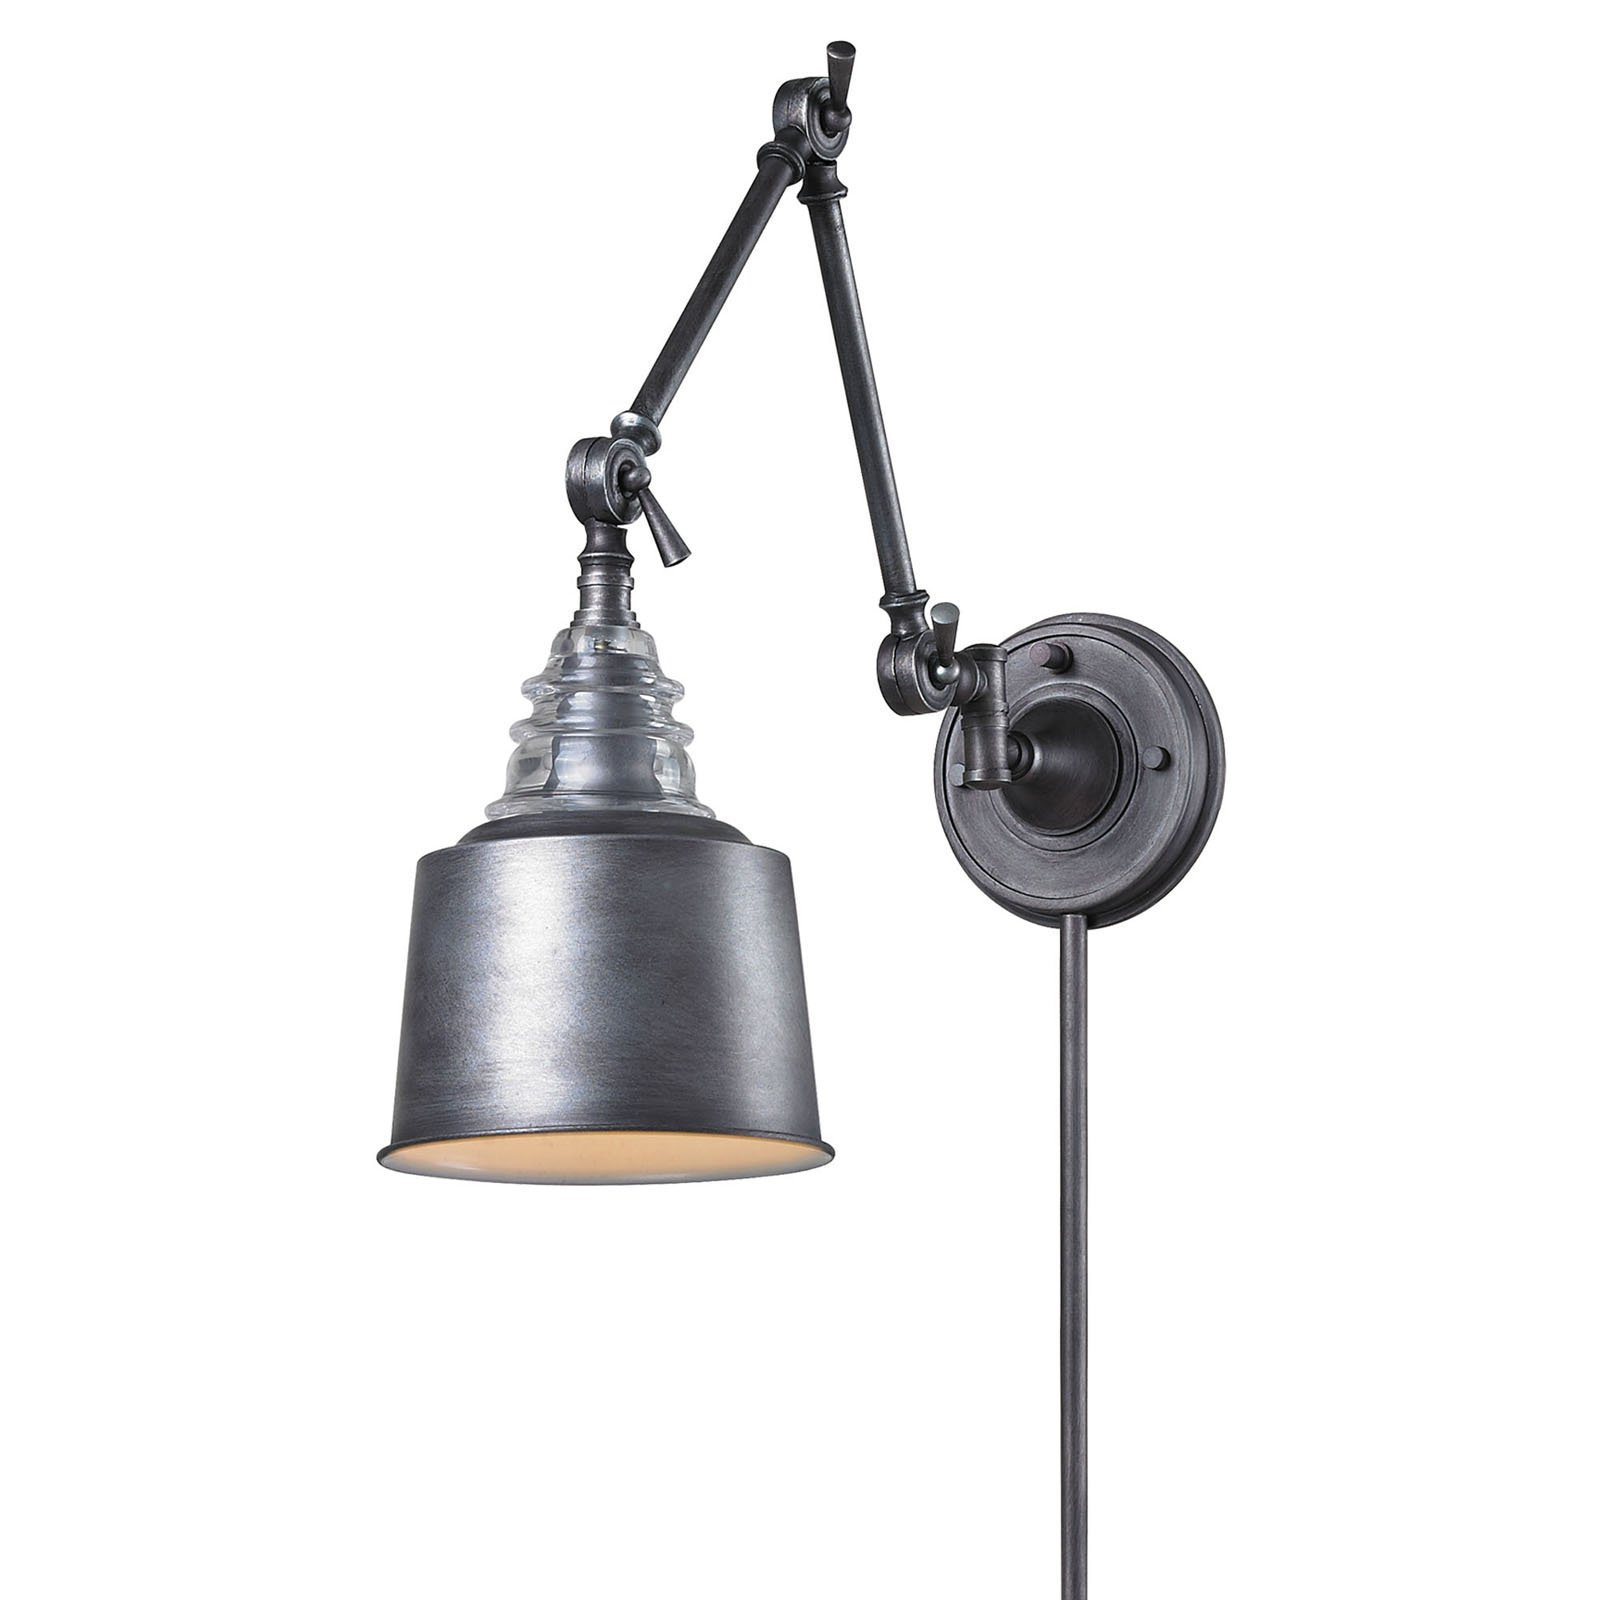 Elk Lighting Insulator Glass 668 Swing Arm Light with Shade by Elk Lighting